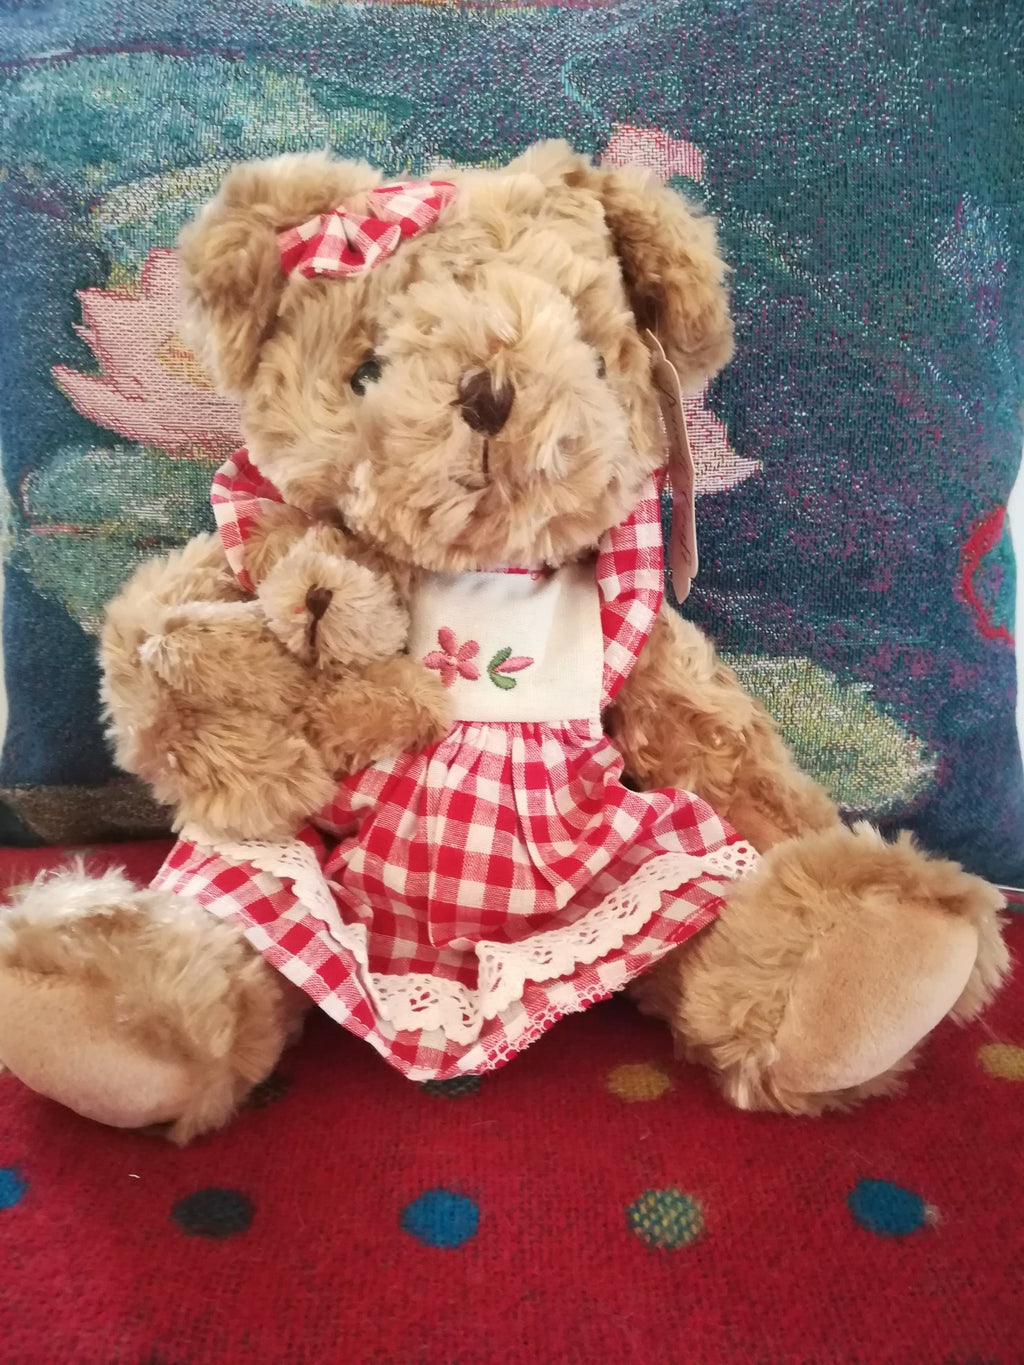 Small Teddy with red gingham dress and with her own teddy